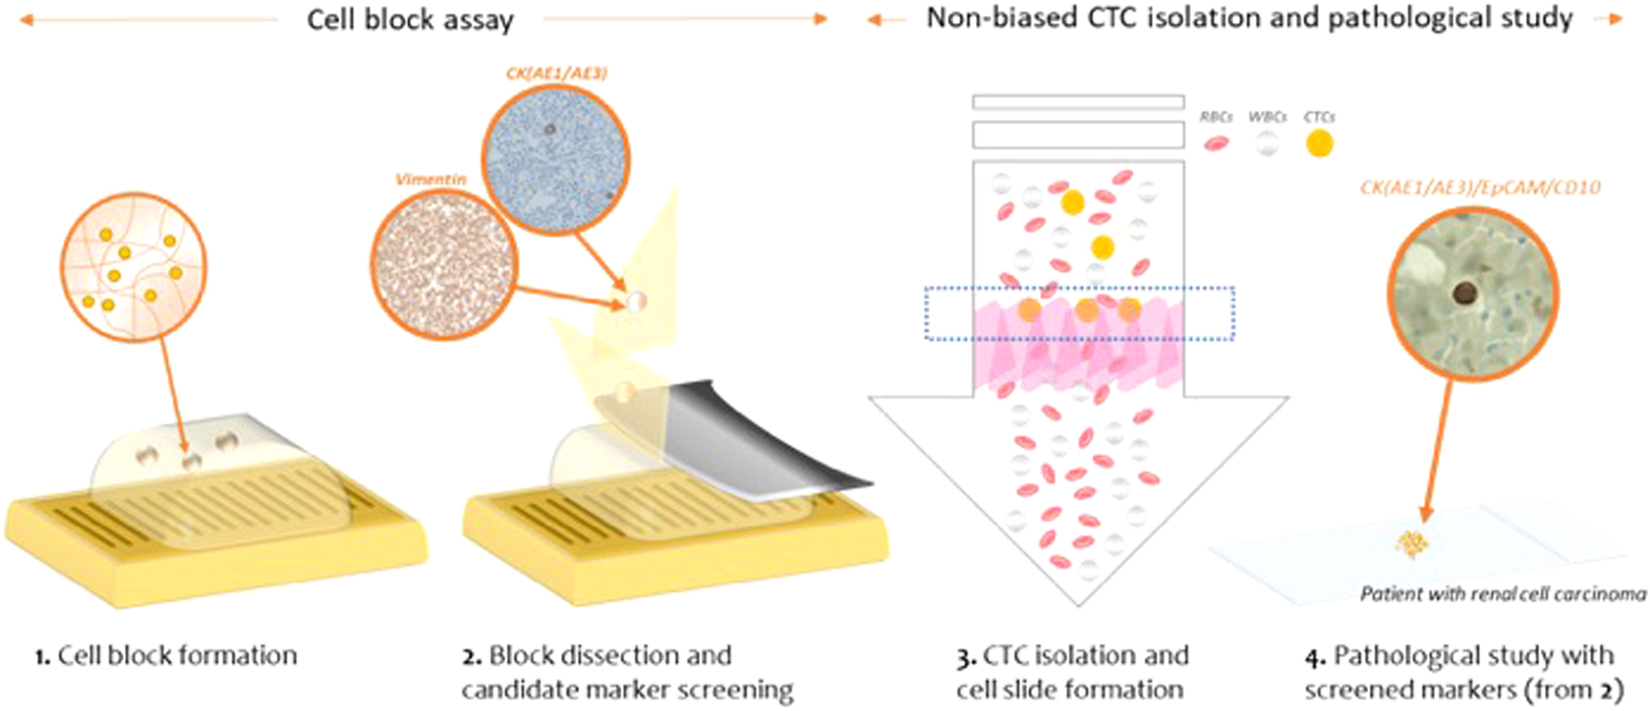 Cytopathological Study Of The Circulating Tumor Cells Filtered From Ory Circuit Diagram Continued Cancer Patients Blood Using Hydrogel Based Cell Block Formation Scientific